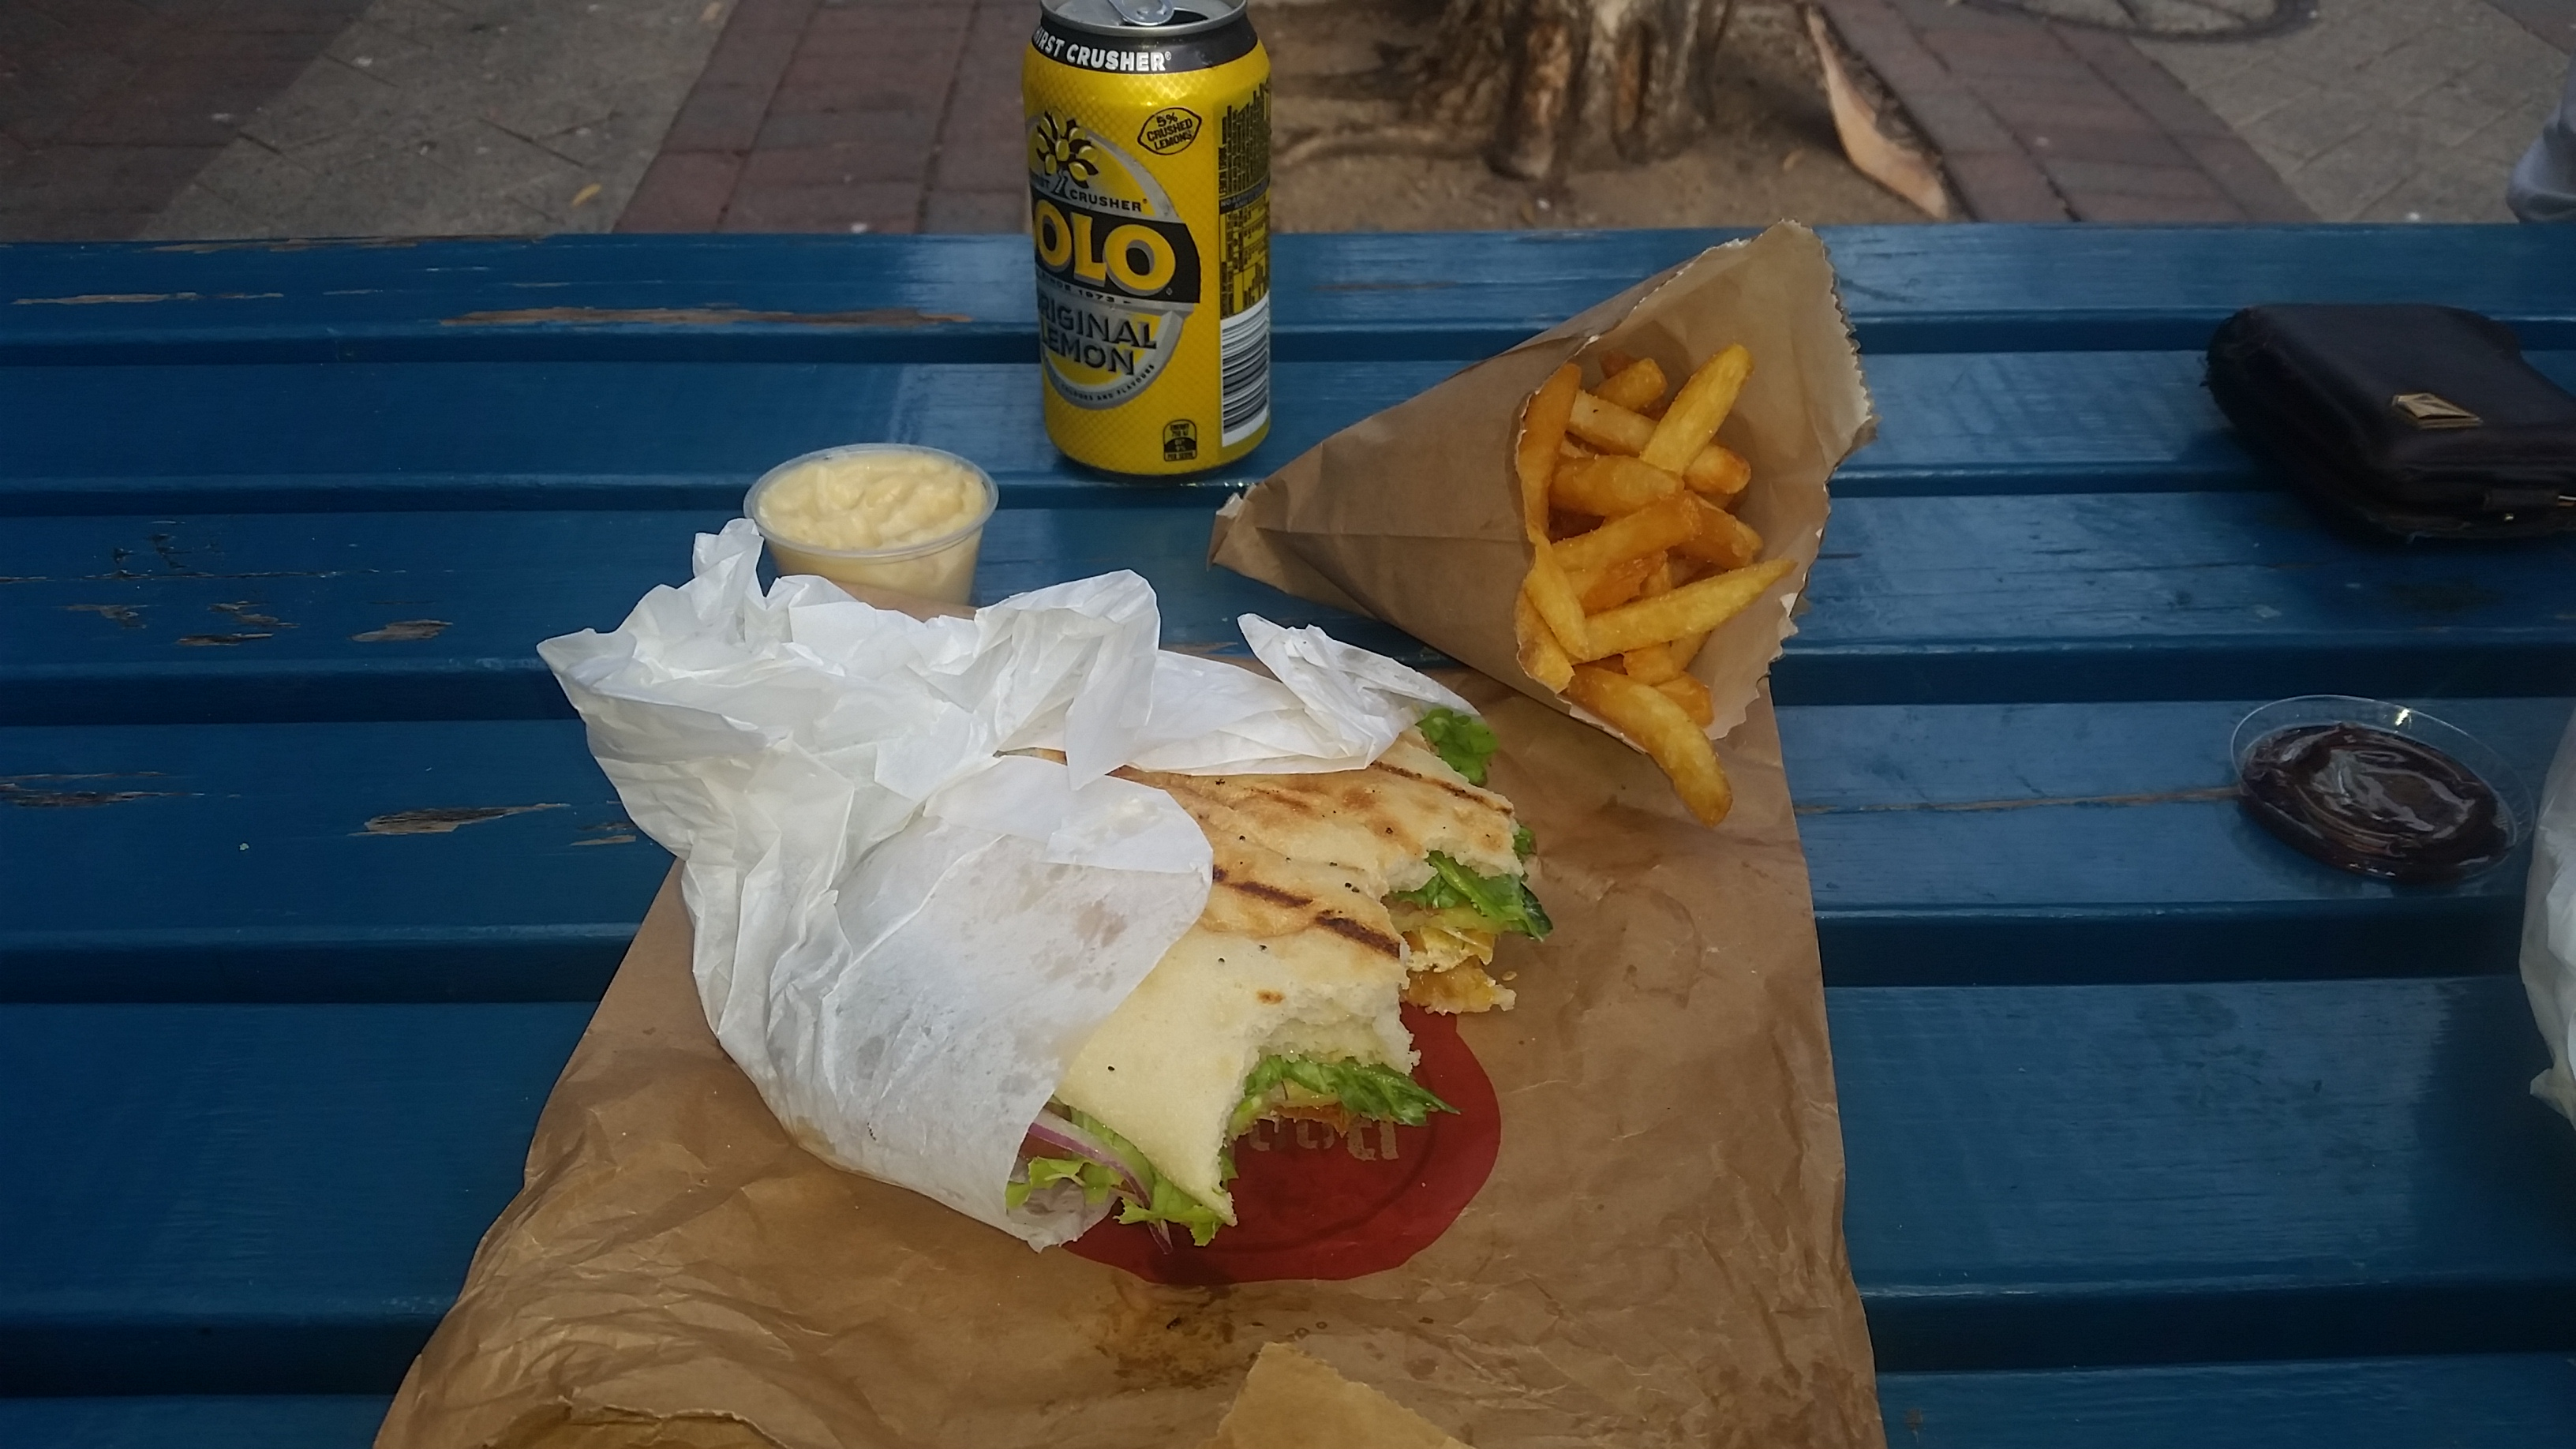 Hard to beat a cheat meal like this. Being a Vego I had to stick to the Tofu buger but still soooo good